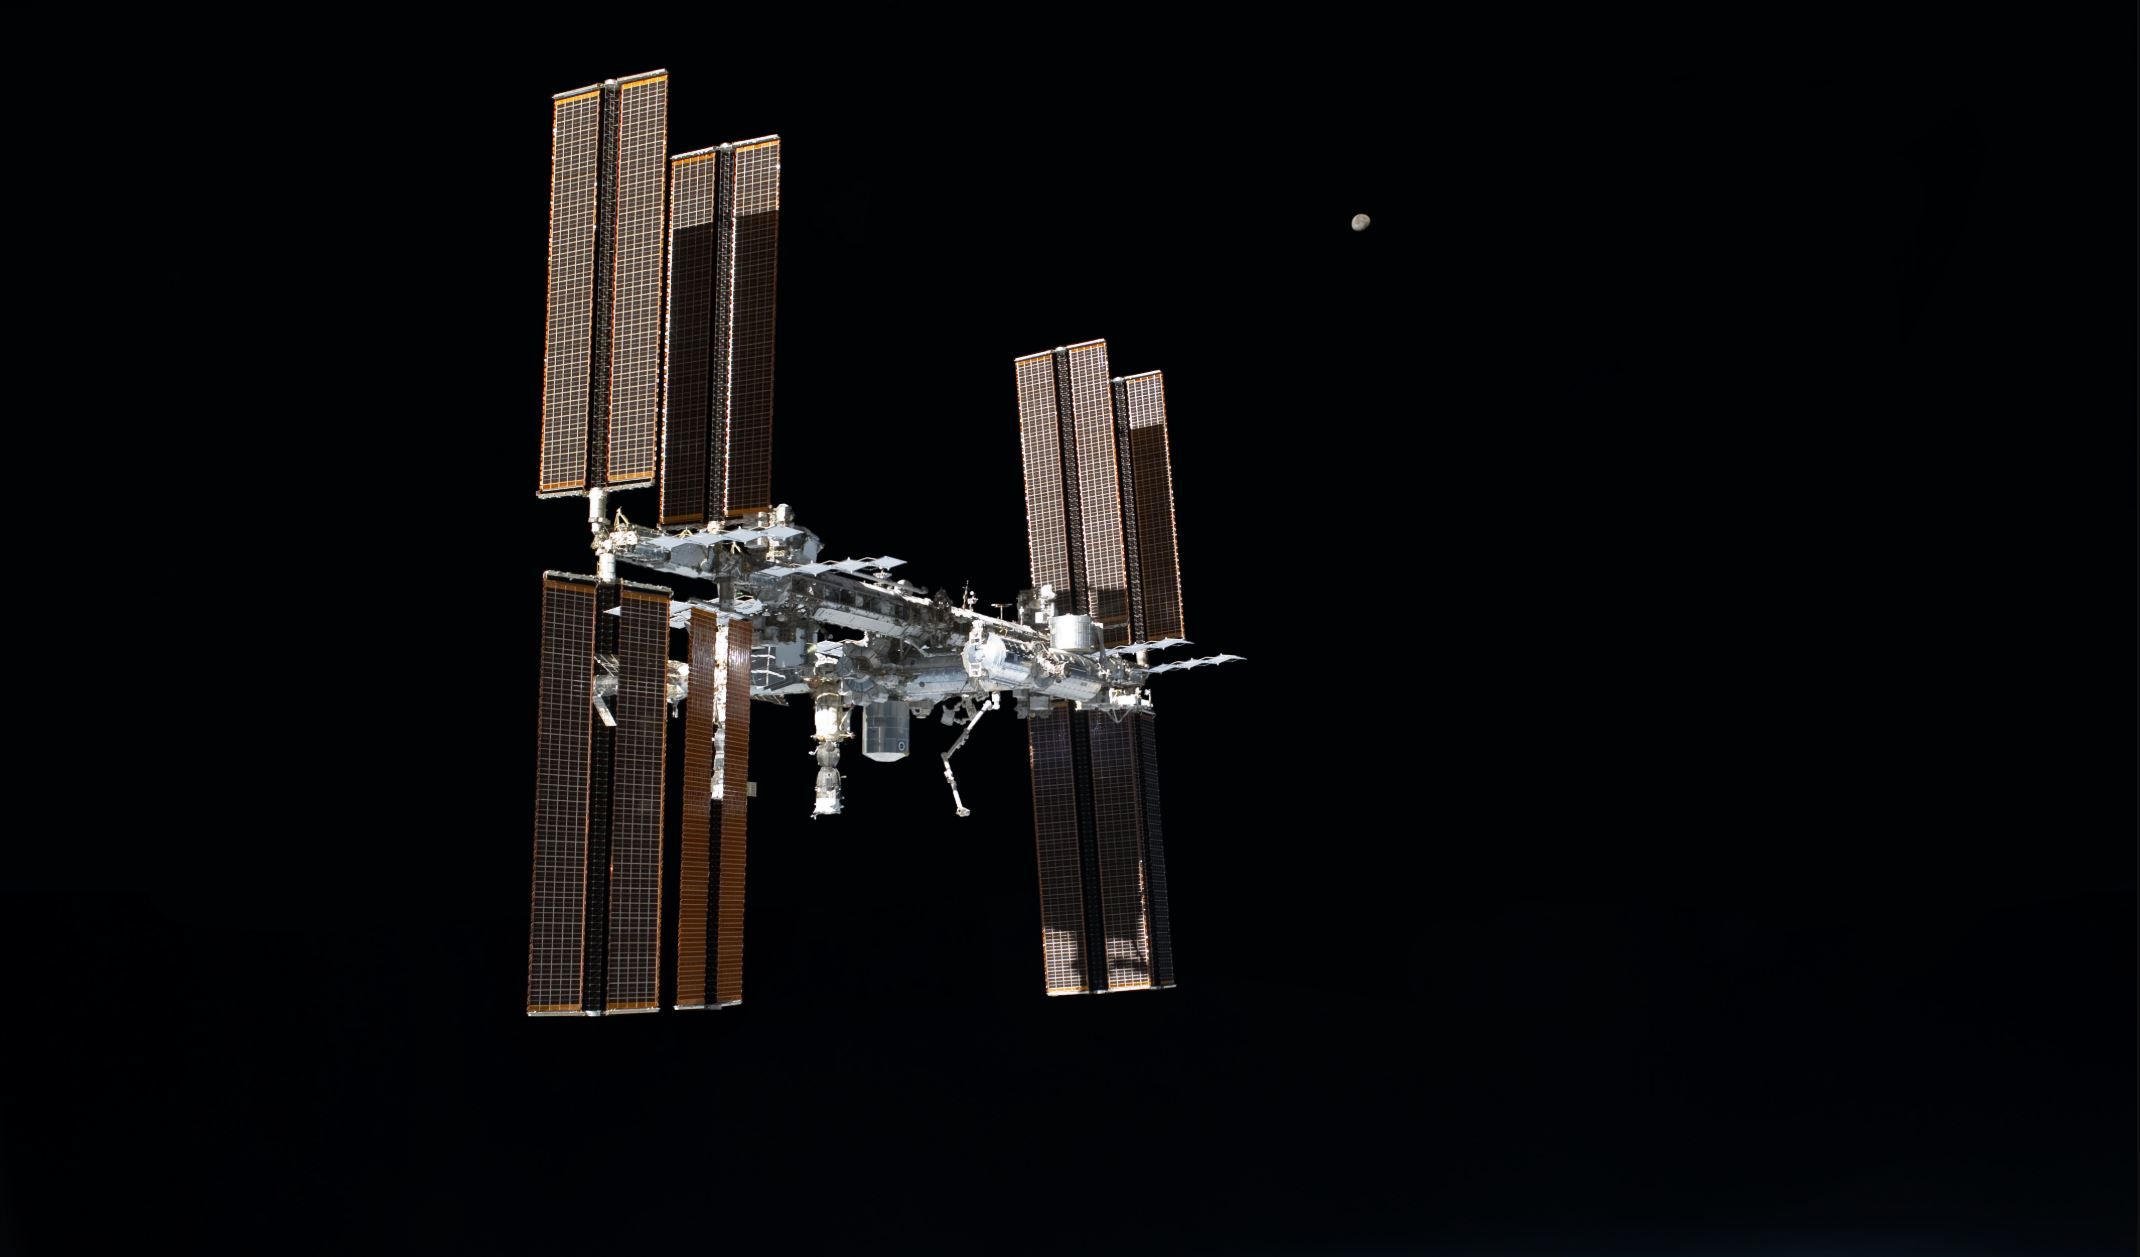 The International Space Station with the moon in the background - Image Credit:  NASA via Wikimedia Commons